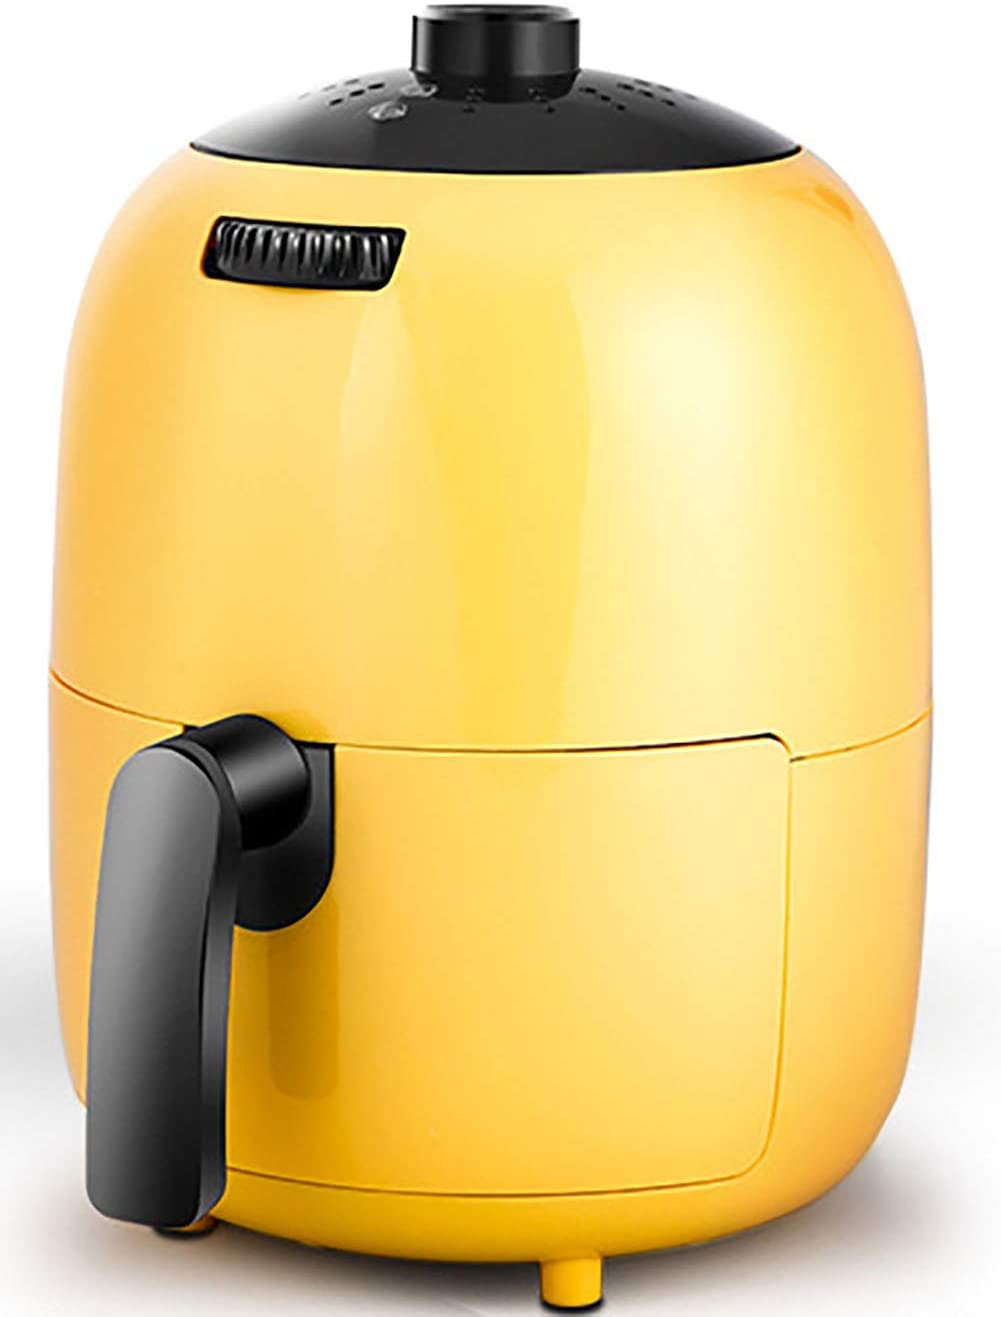 Air Fryer, Digital Mini Air Fryer 6-in-1 Oil Free Healthy Fryer Family-Size Capacity Oven/Cooker for Low Fat Cooking Timer and Fully Adjustable Temperature Control, LED Display